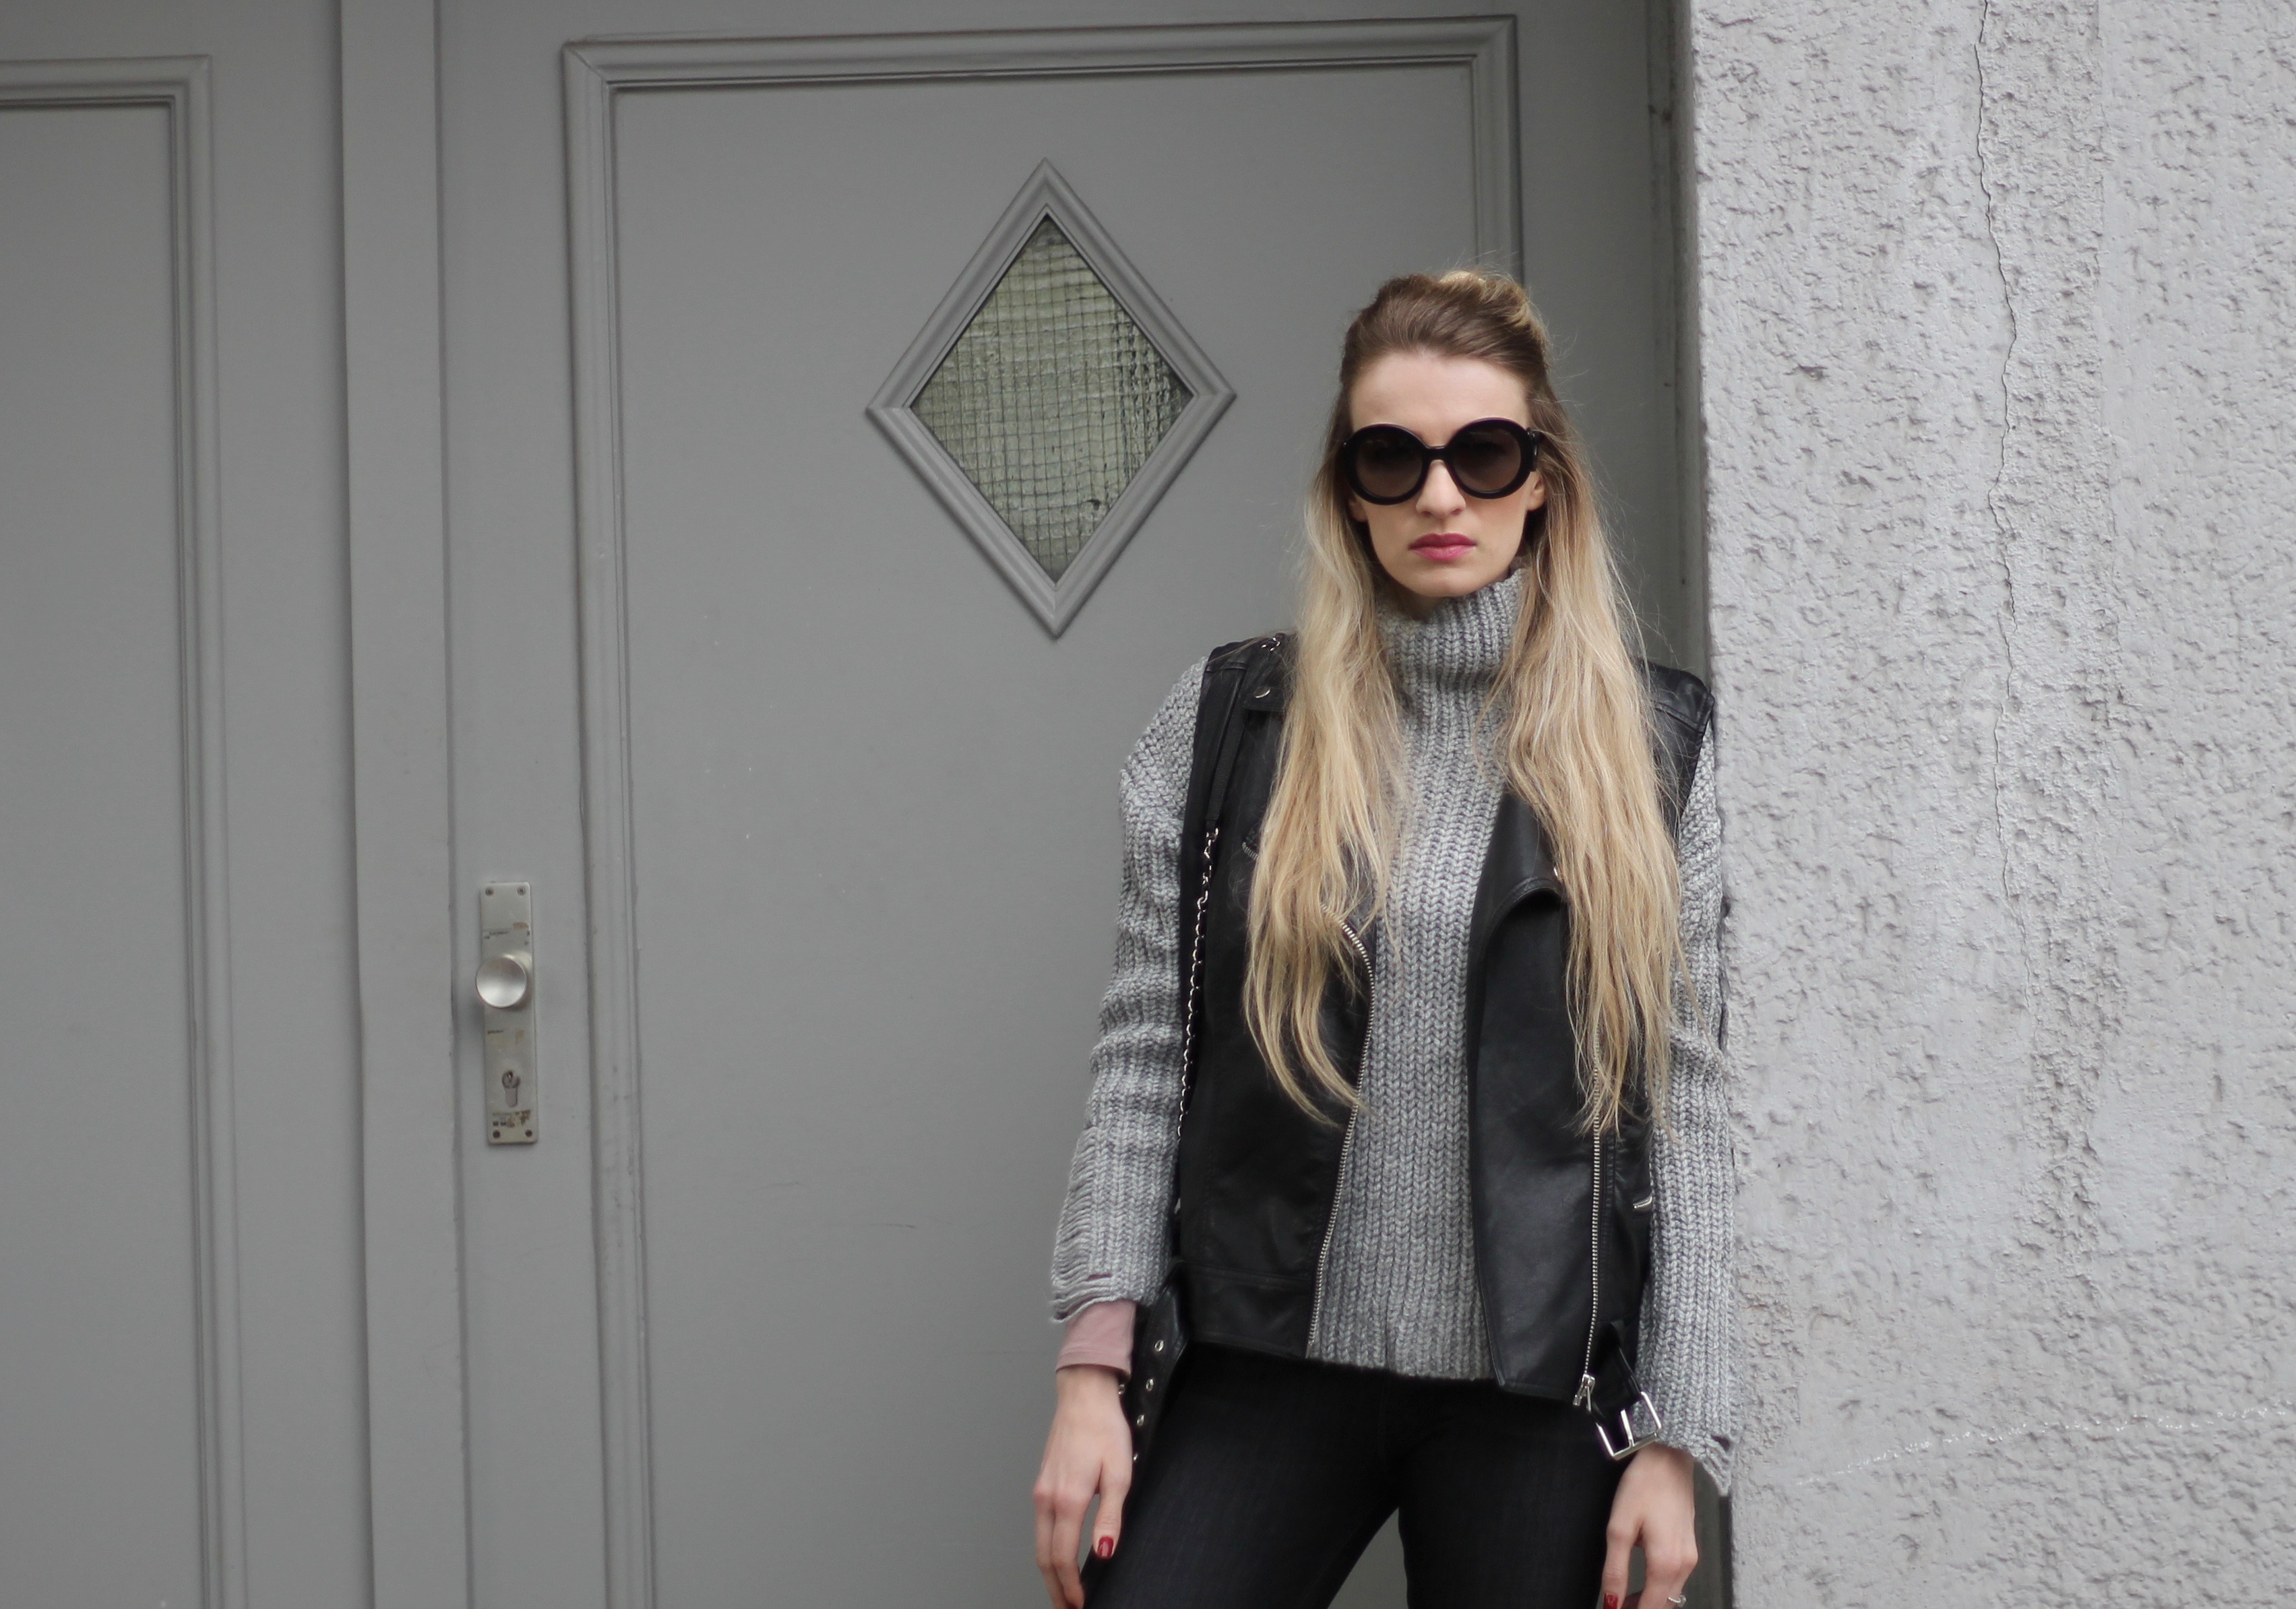 Mon Mode, Fashionblog, Berlin, Knitwear, Chunky Knits, Vest, Biker Vest, Leather Vest, Celine Sunglasses, Berlin Fashion Blog, Canadian Fashion Blog